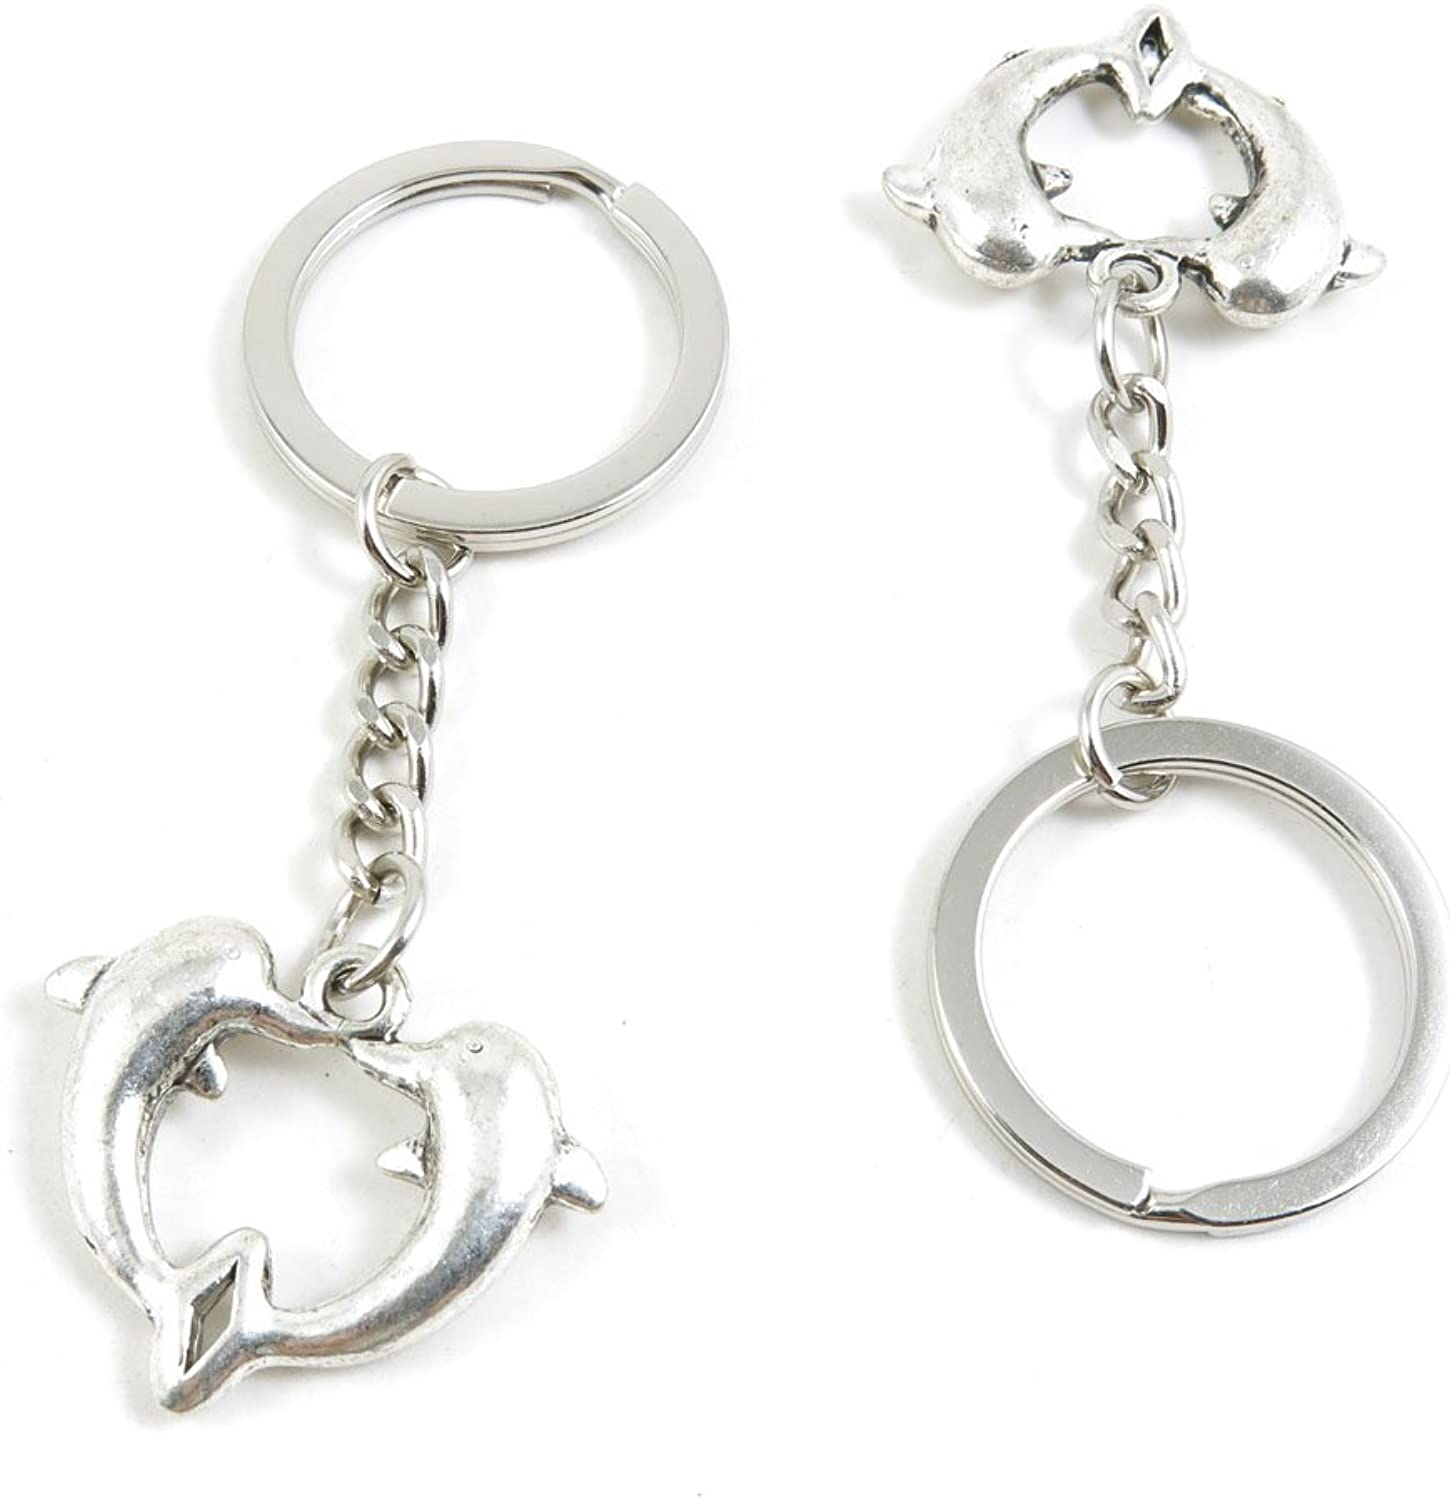 130 Pieces Fashion Jewelry Keyring Keychain Door Car Key Tag Ring Chain Supplier Supply Wholesale Bulk Lots L8RP1 Dolphin